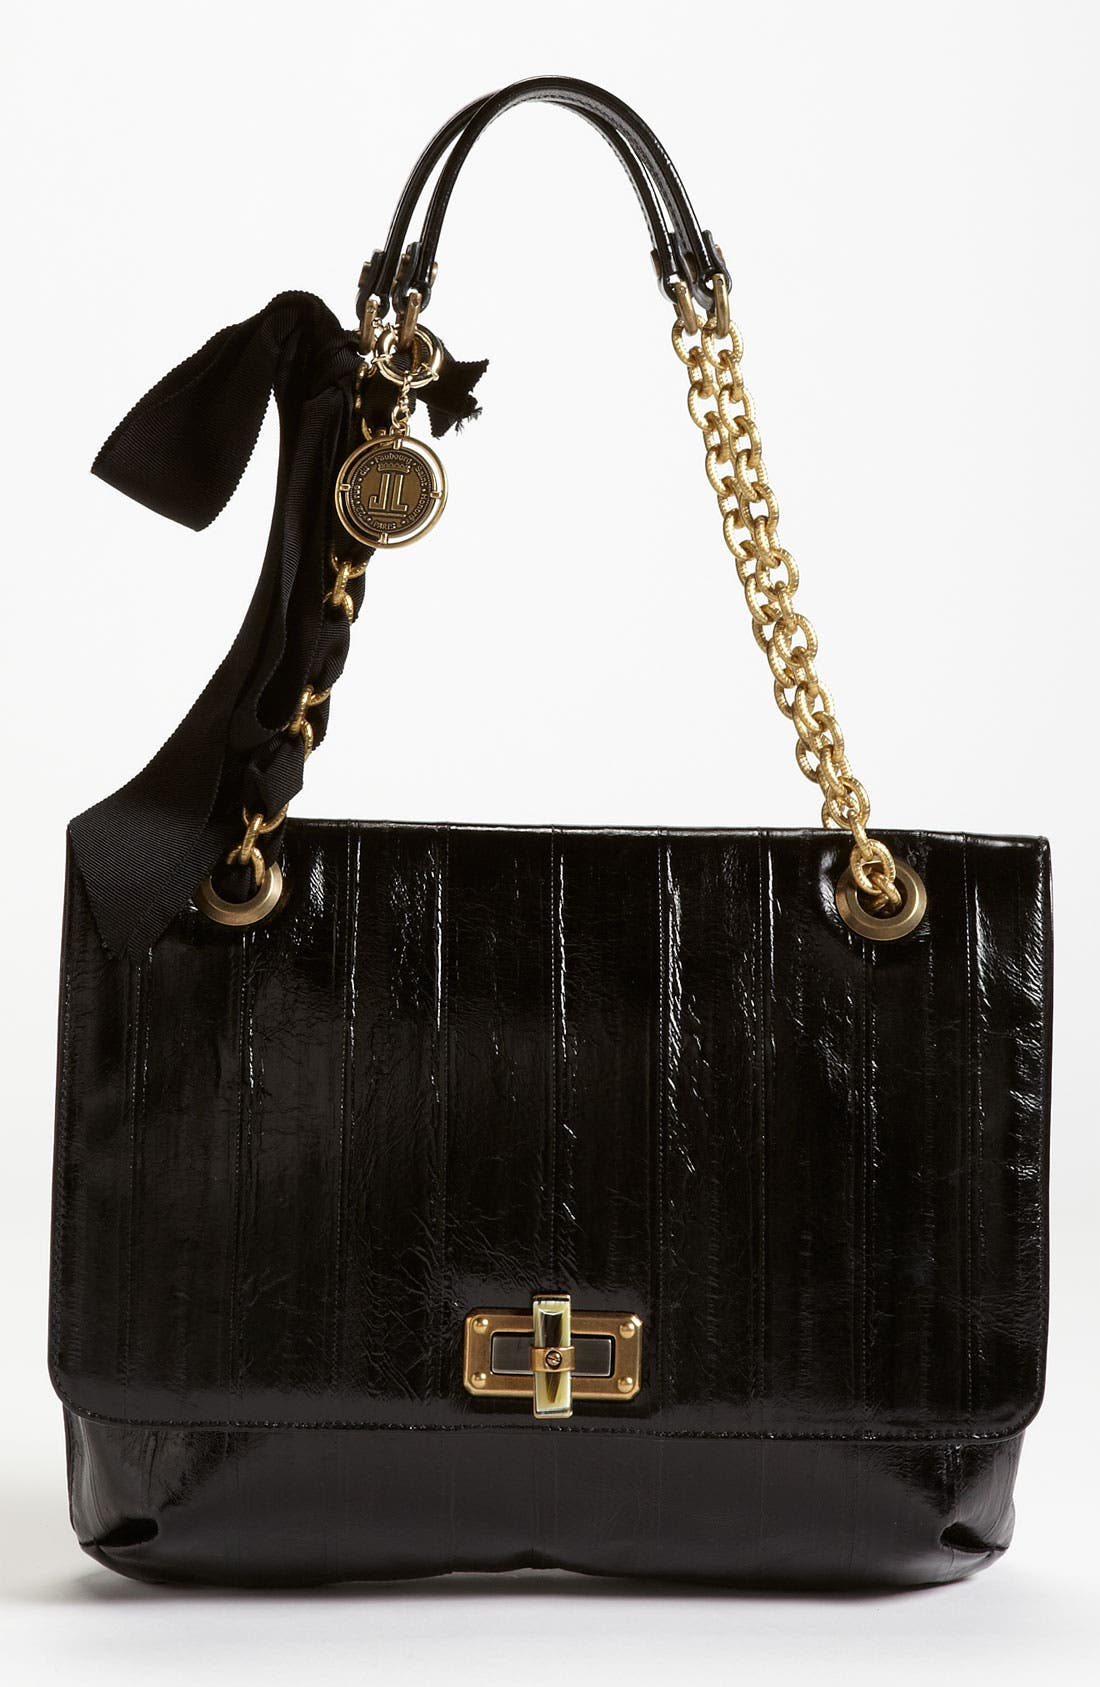 Alternate Image 1 Selected - Lanvin 'Happy' Glazed Leather Shoulder Bag